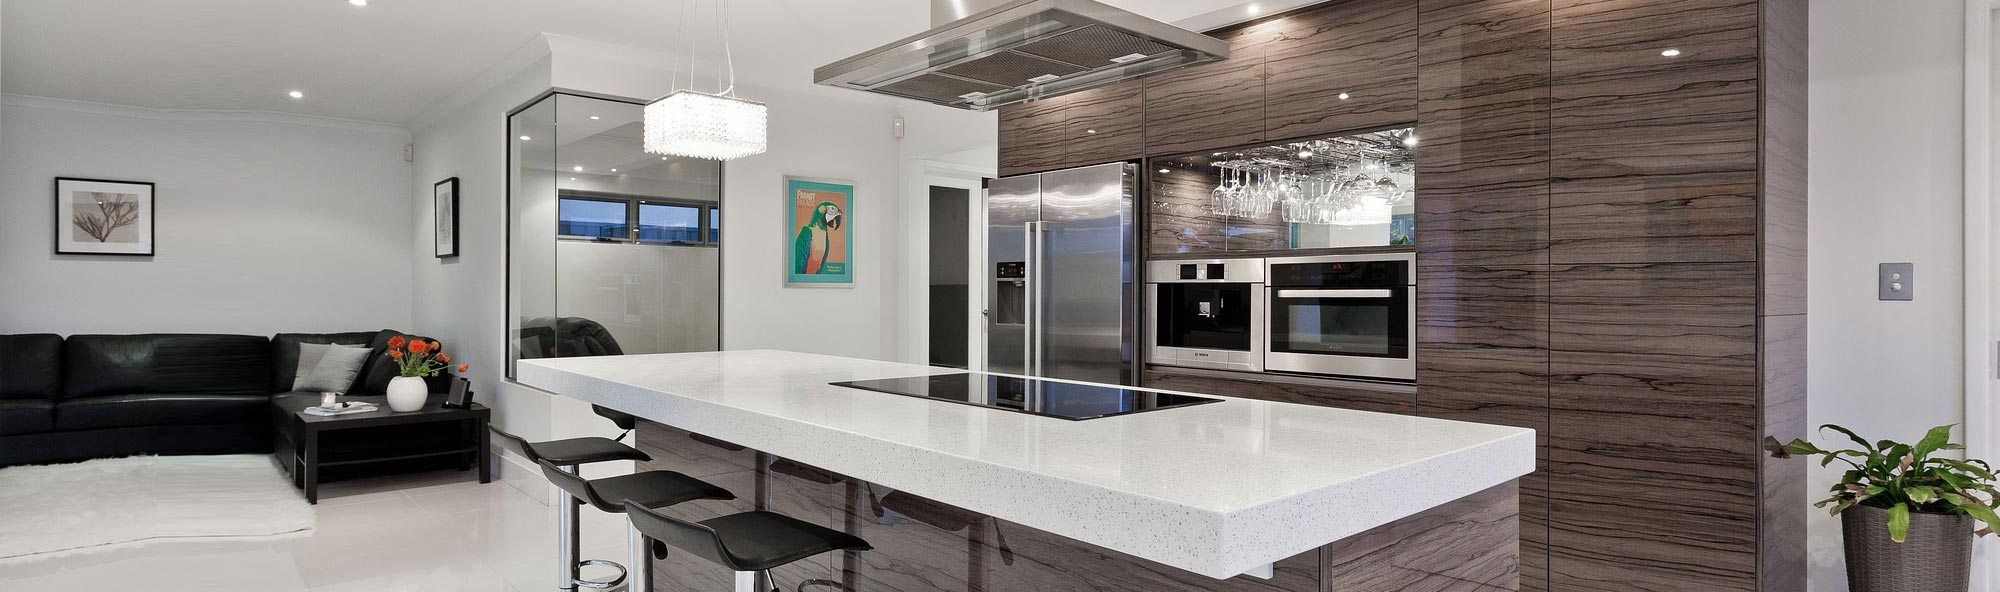 Some Innovative Yet Affordable Ideas On kitchen Renovations Adelaide